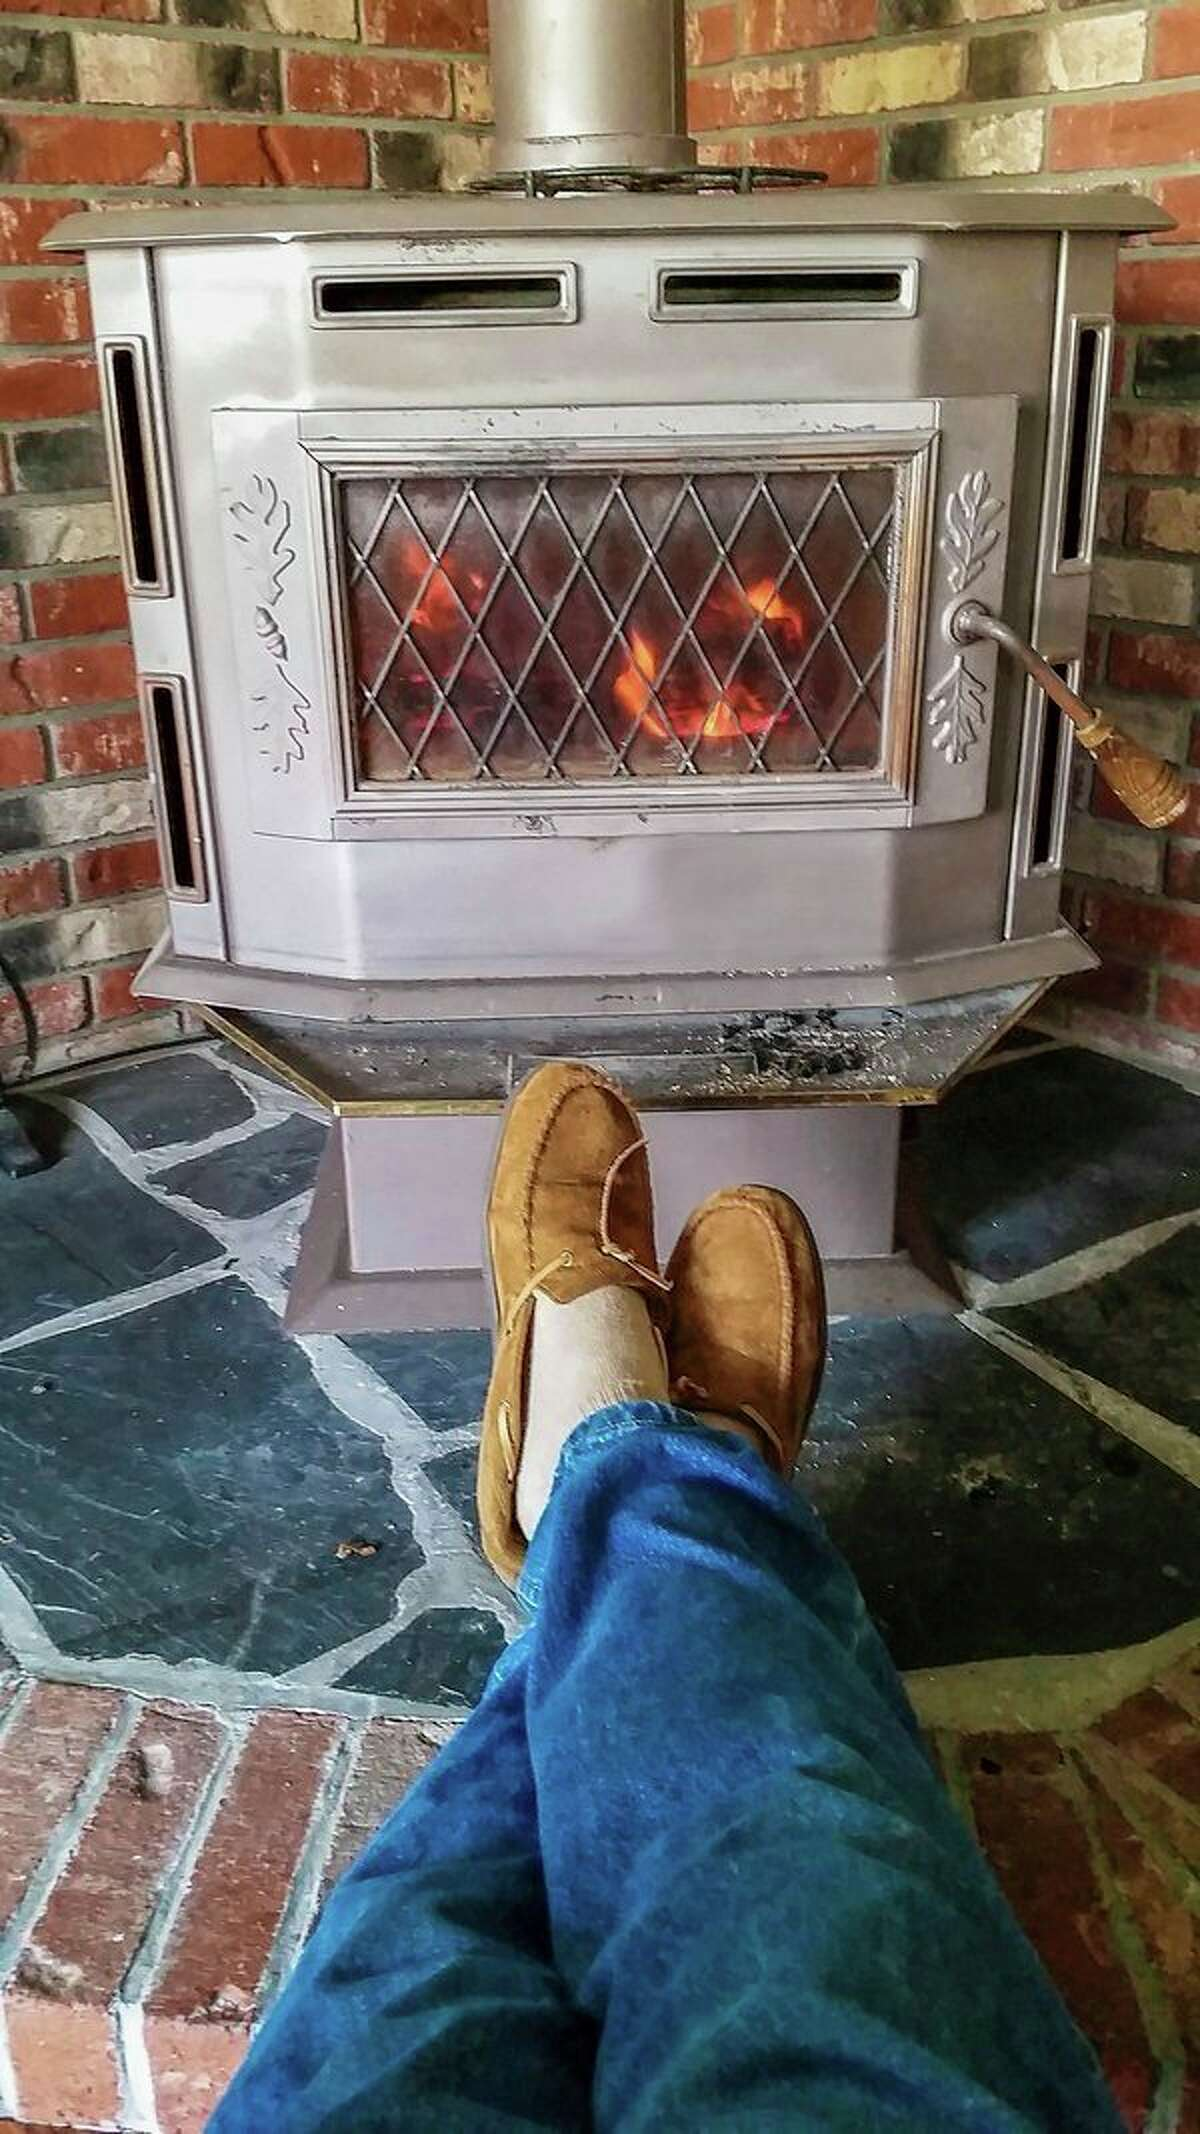 Most heating assistance coverselectric, gas, propane and deliverable fuels like wood. Residents should check with their local agencies for help. (Courtesy photo)